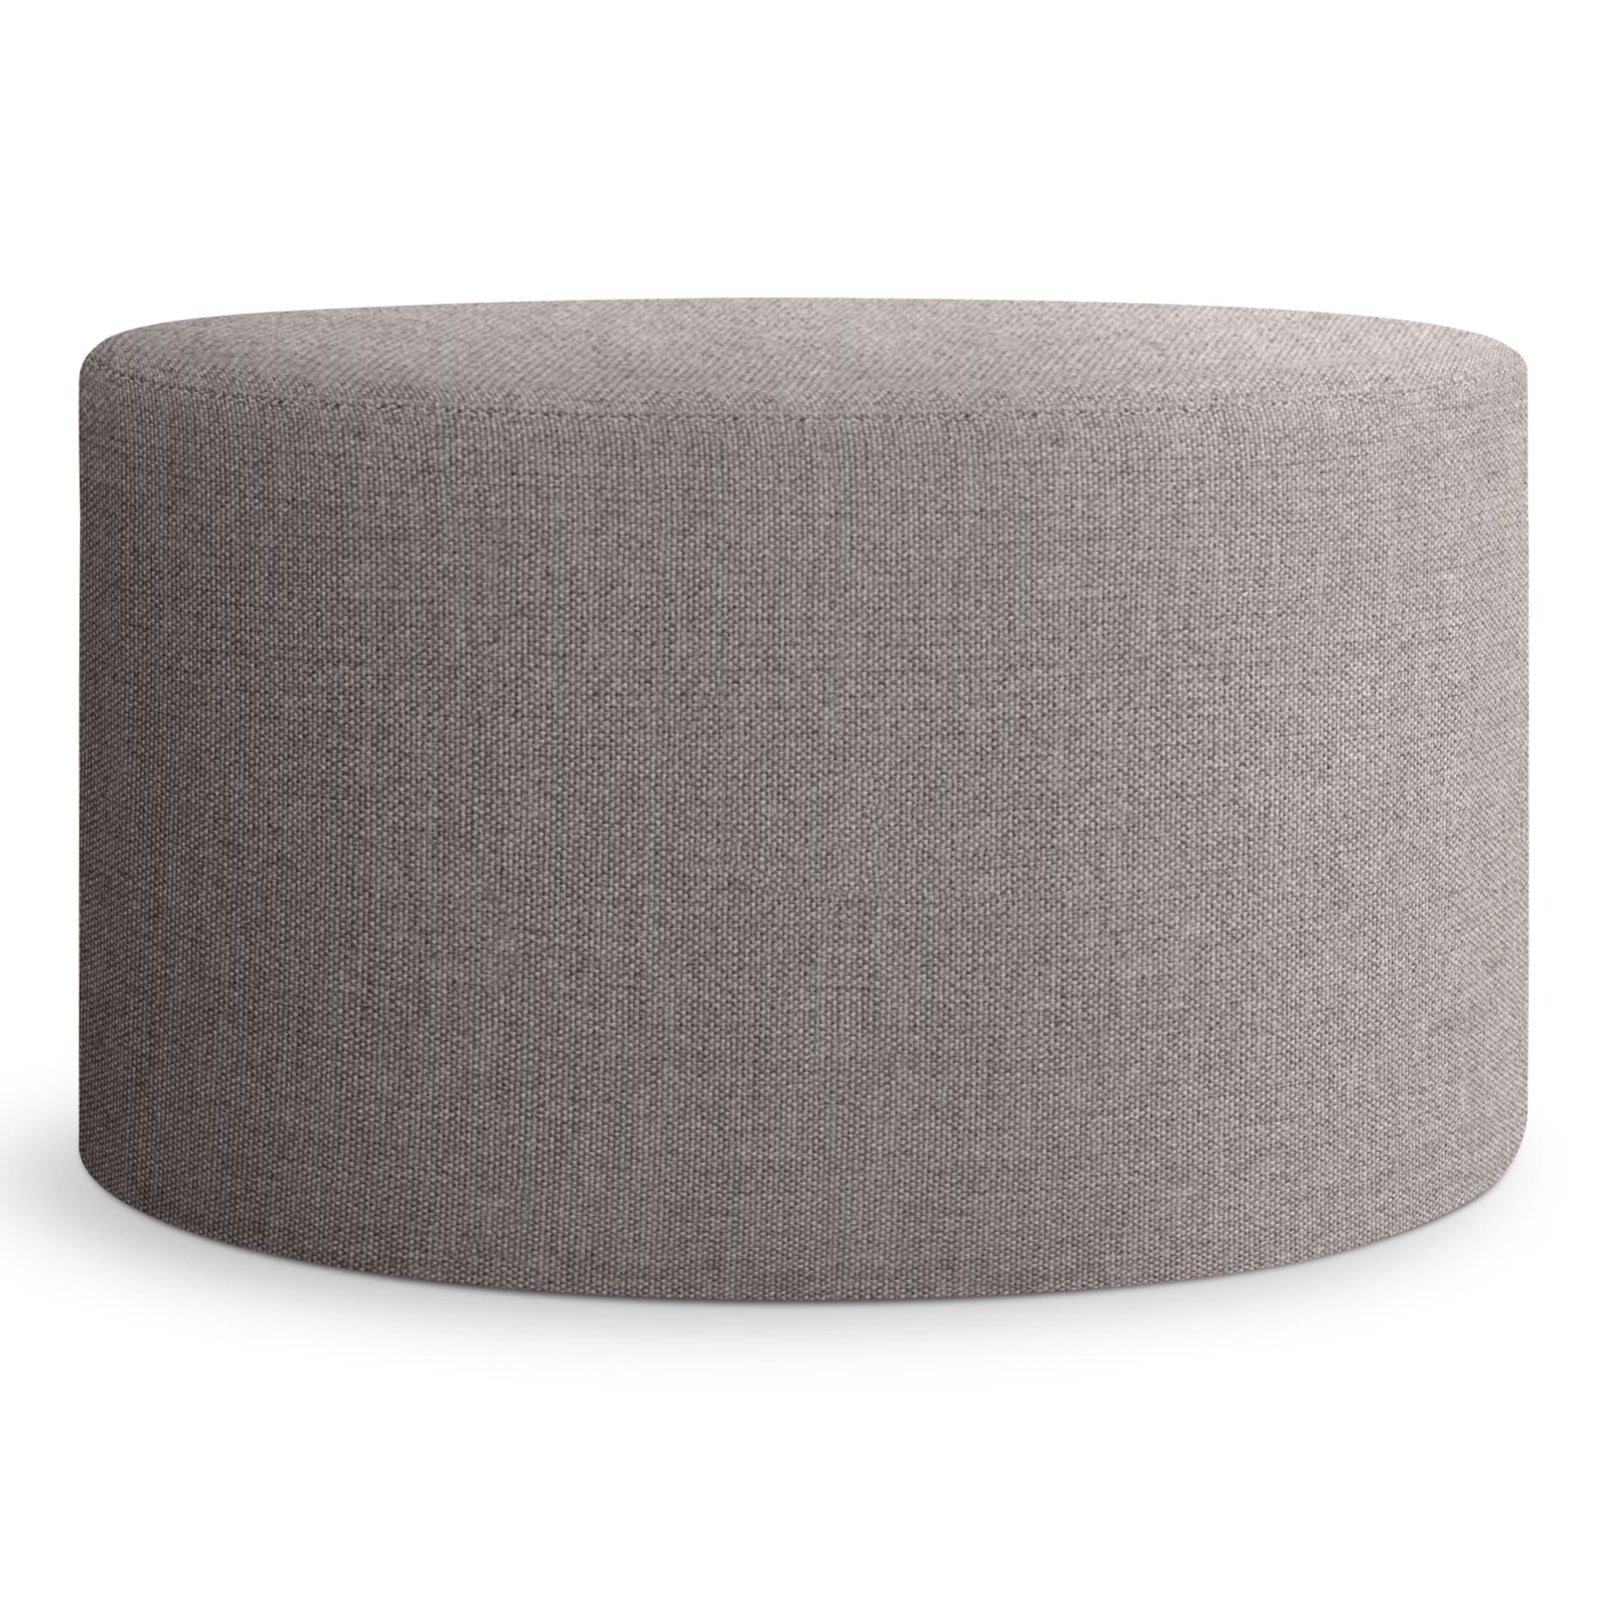 Blu Dot Furniture Large / Toohey Charcoal Bumper Outdoor Ottoman